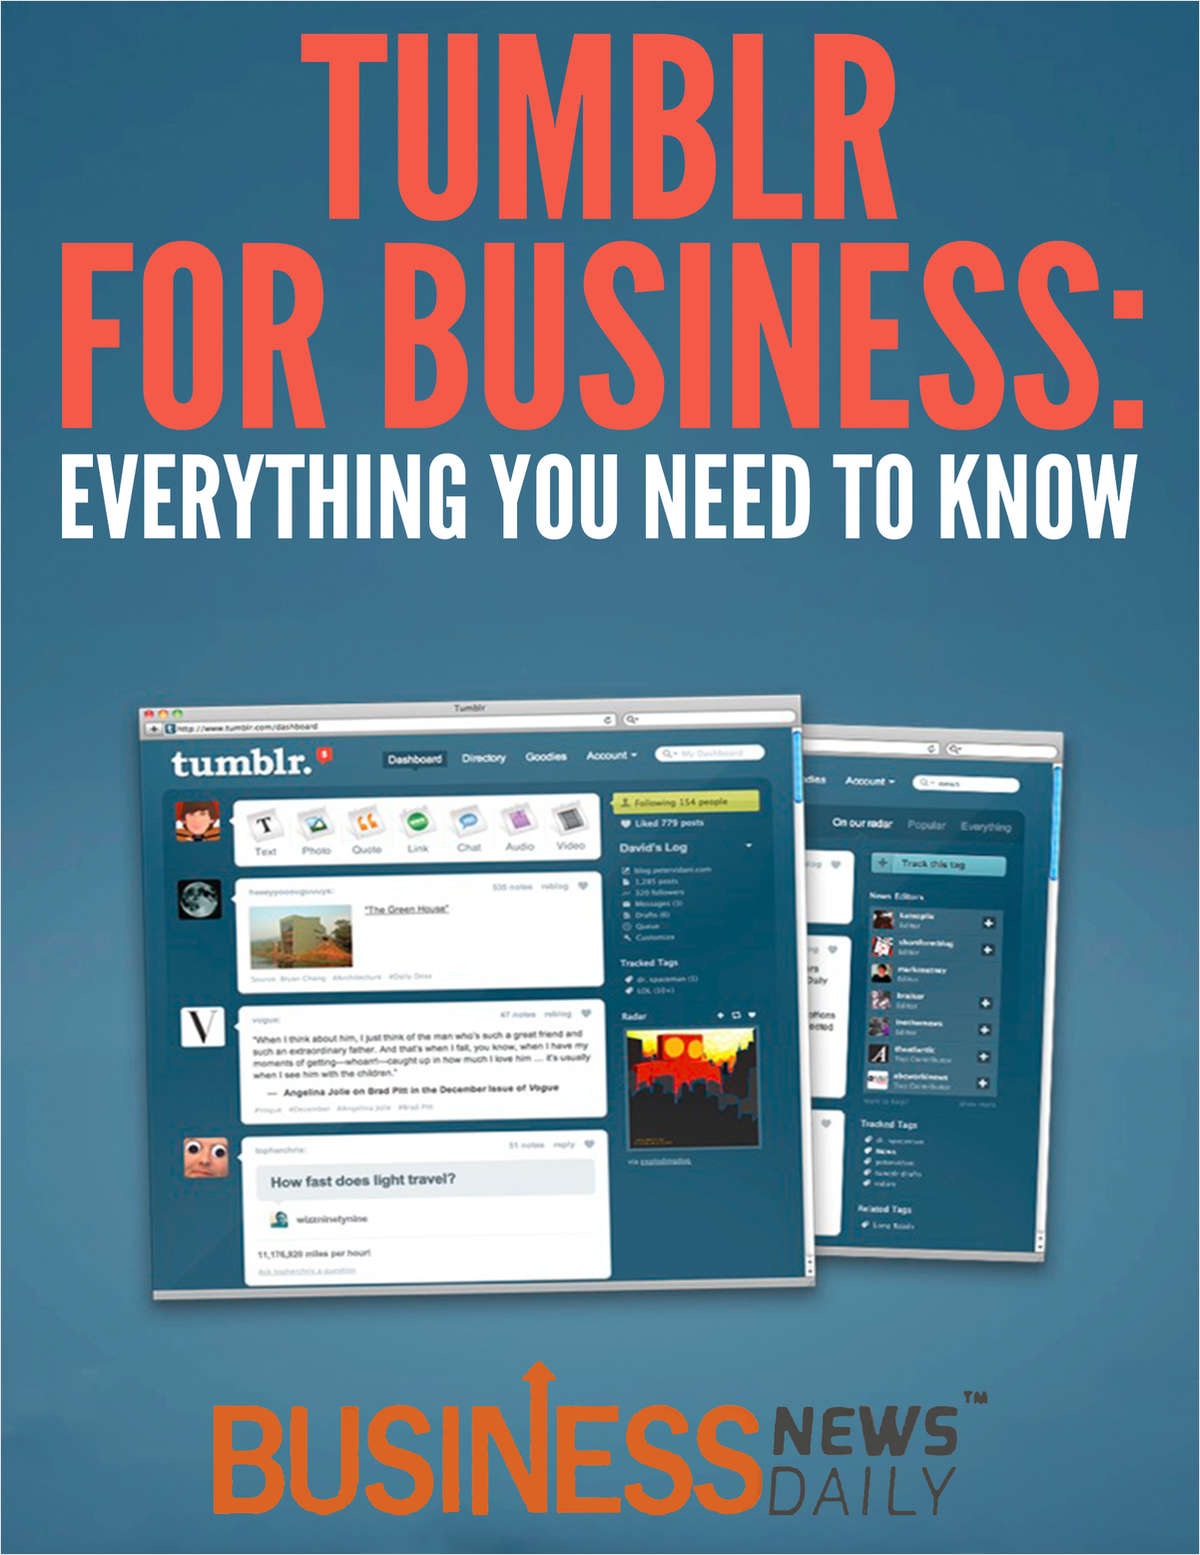 Tumblr for Business: Everything You Need to Know